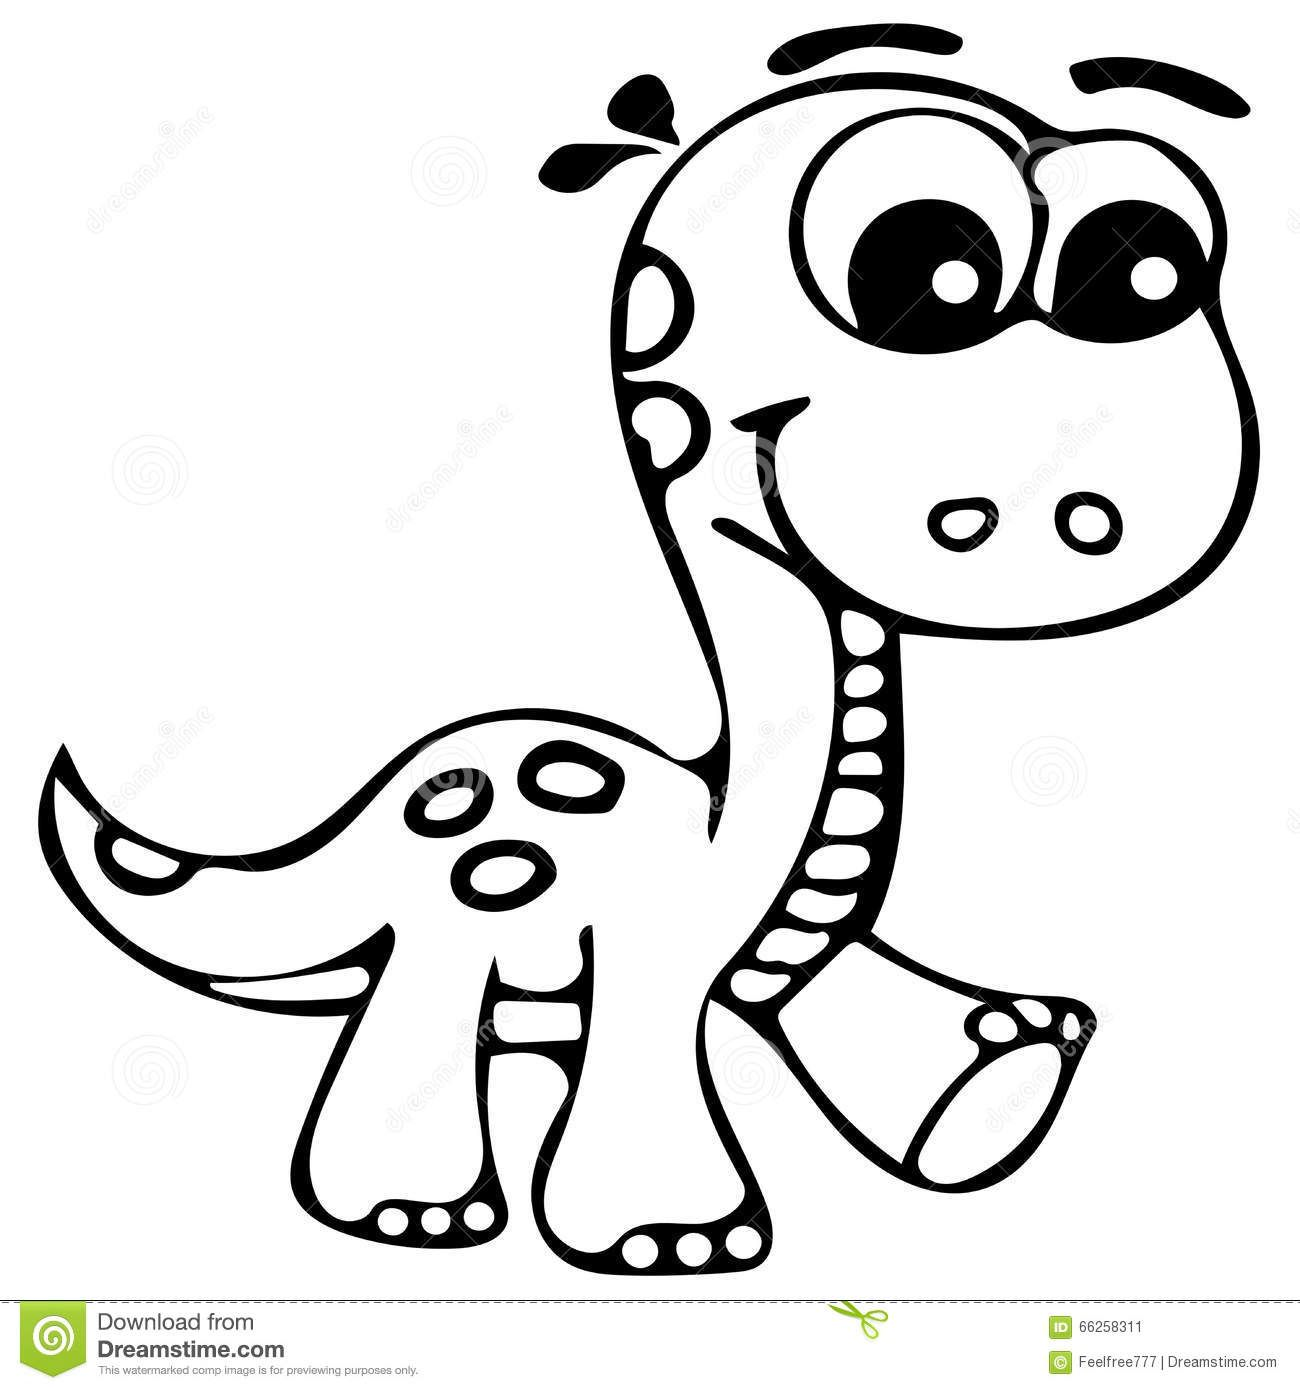 coloring dinosaurs free printable dinosaur coloring pages for kids dinosaurs coloring